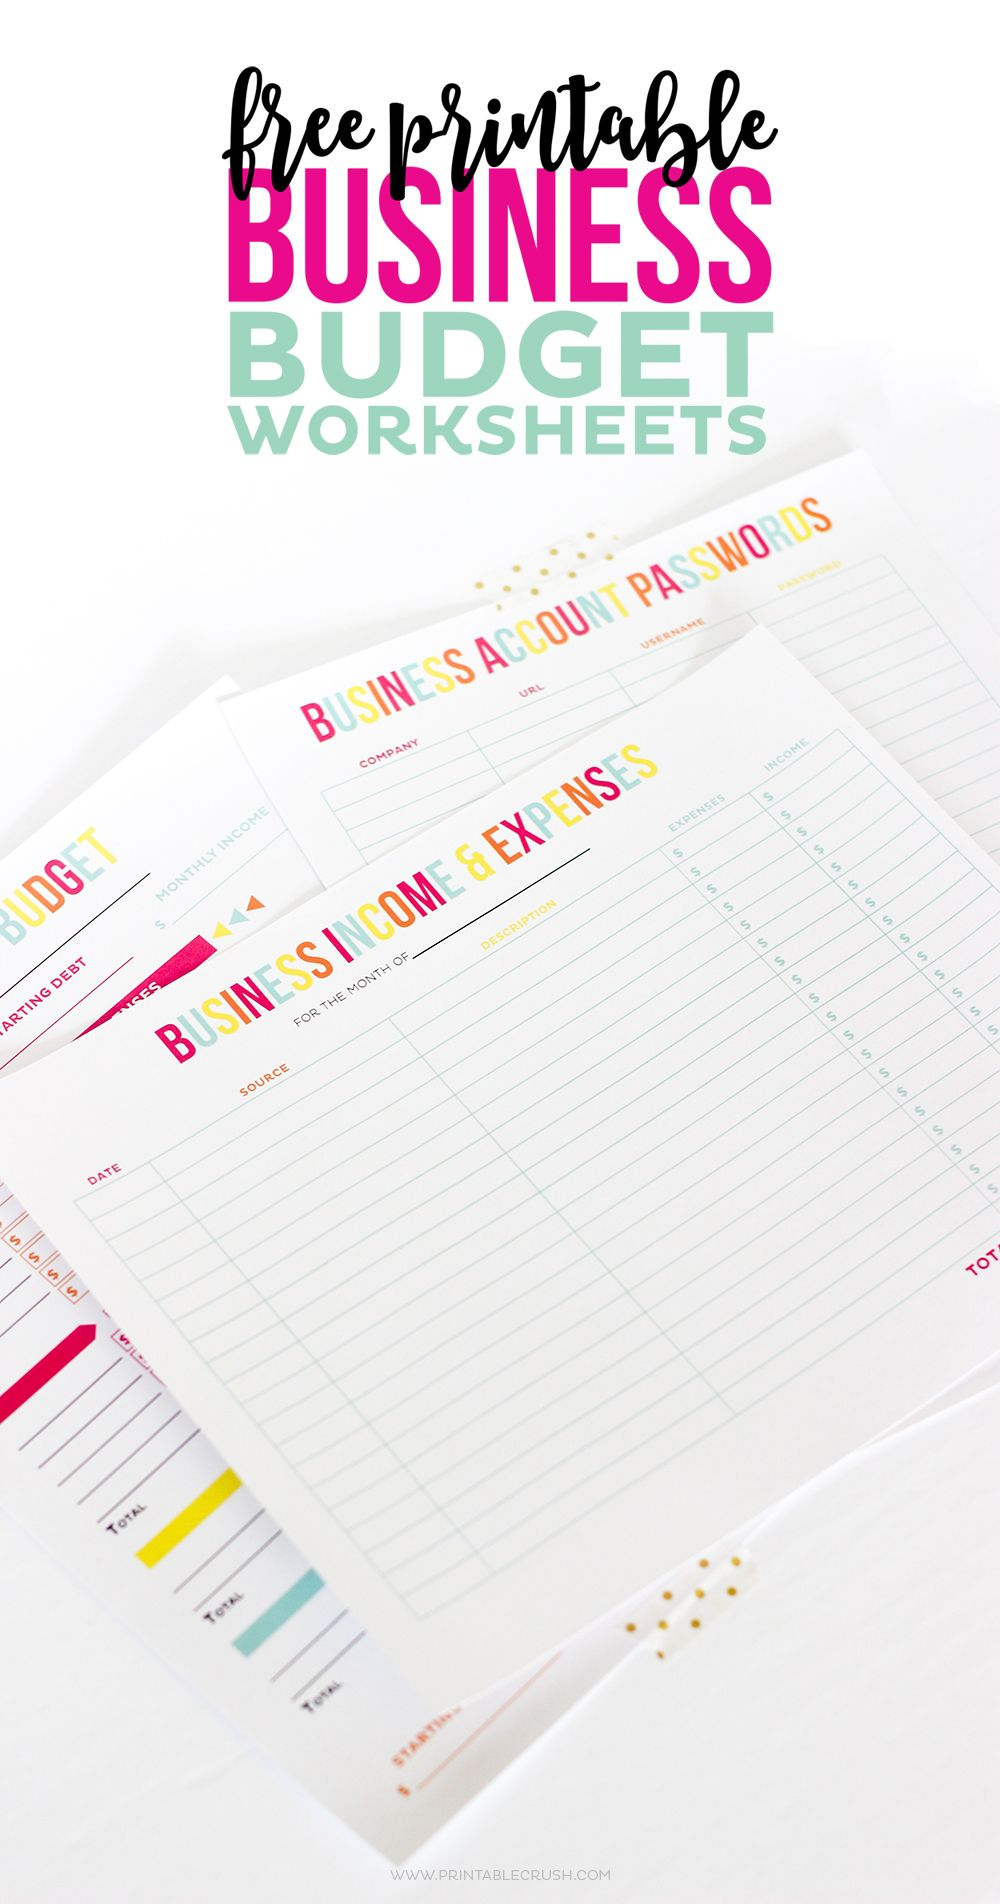 FREE Printable Business Budget Worksheets Budgeting